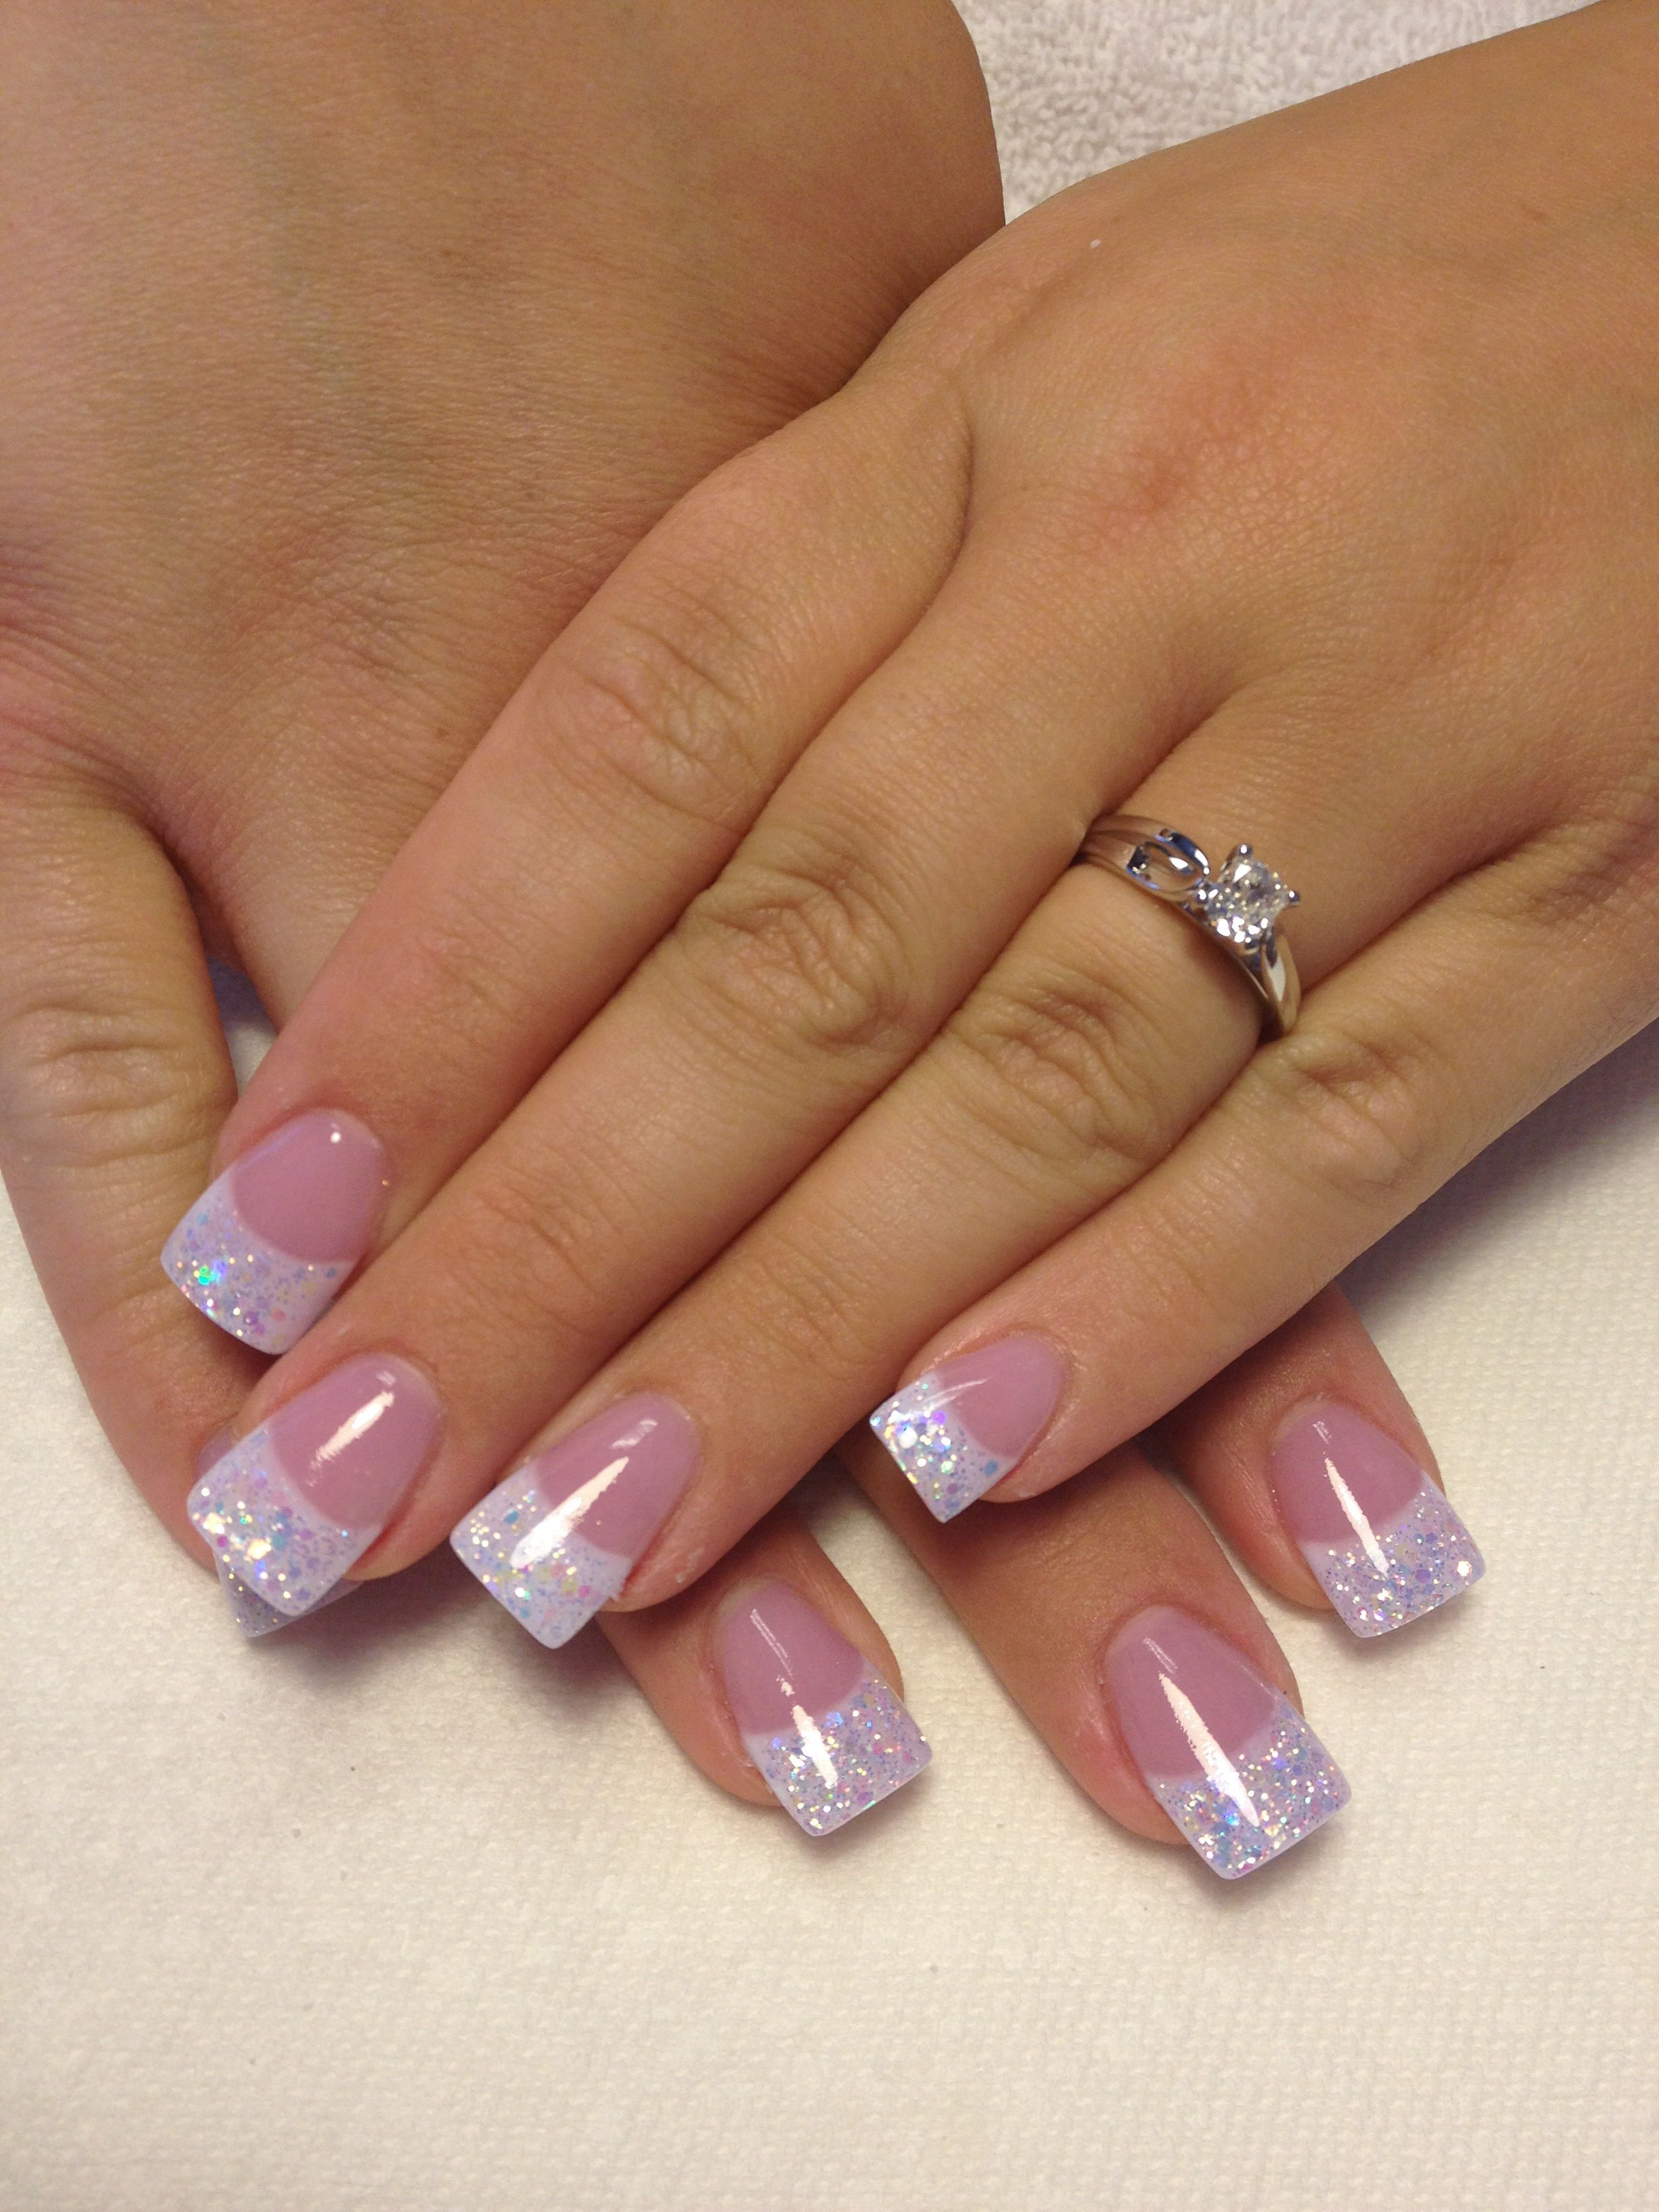 Sparkly pink and whites by Cathy Heine @ Curl Up and Dye ...